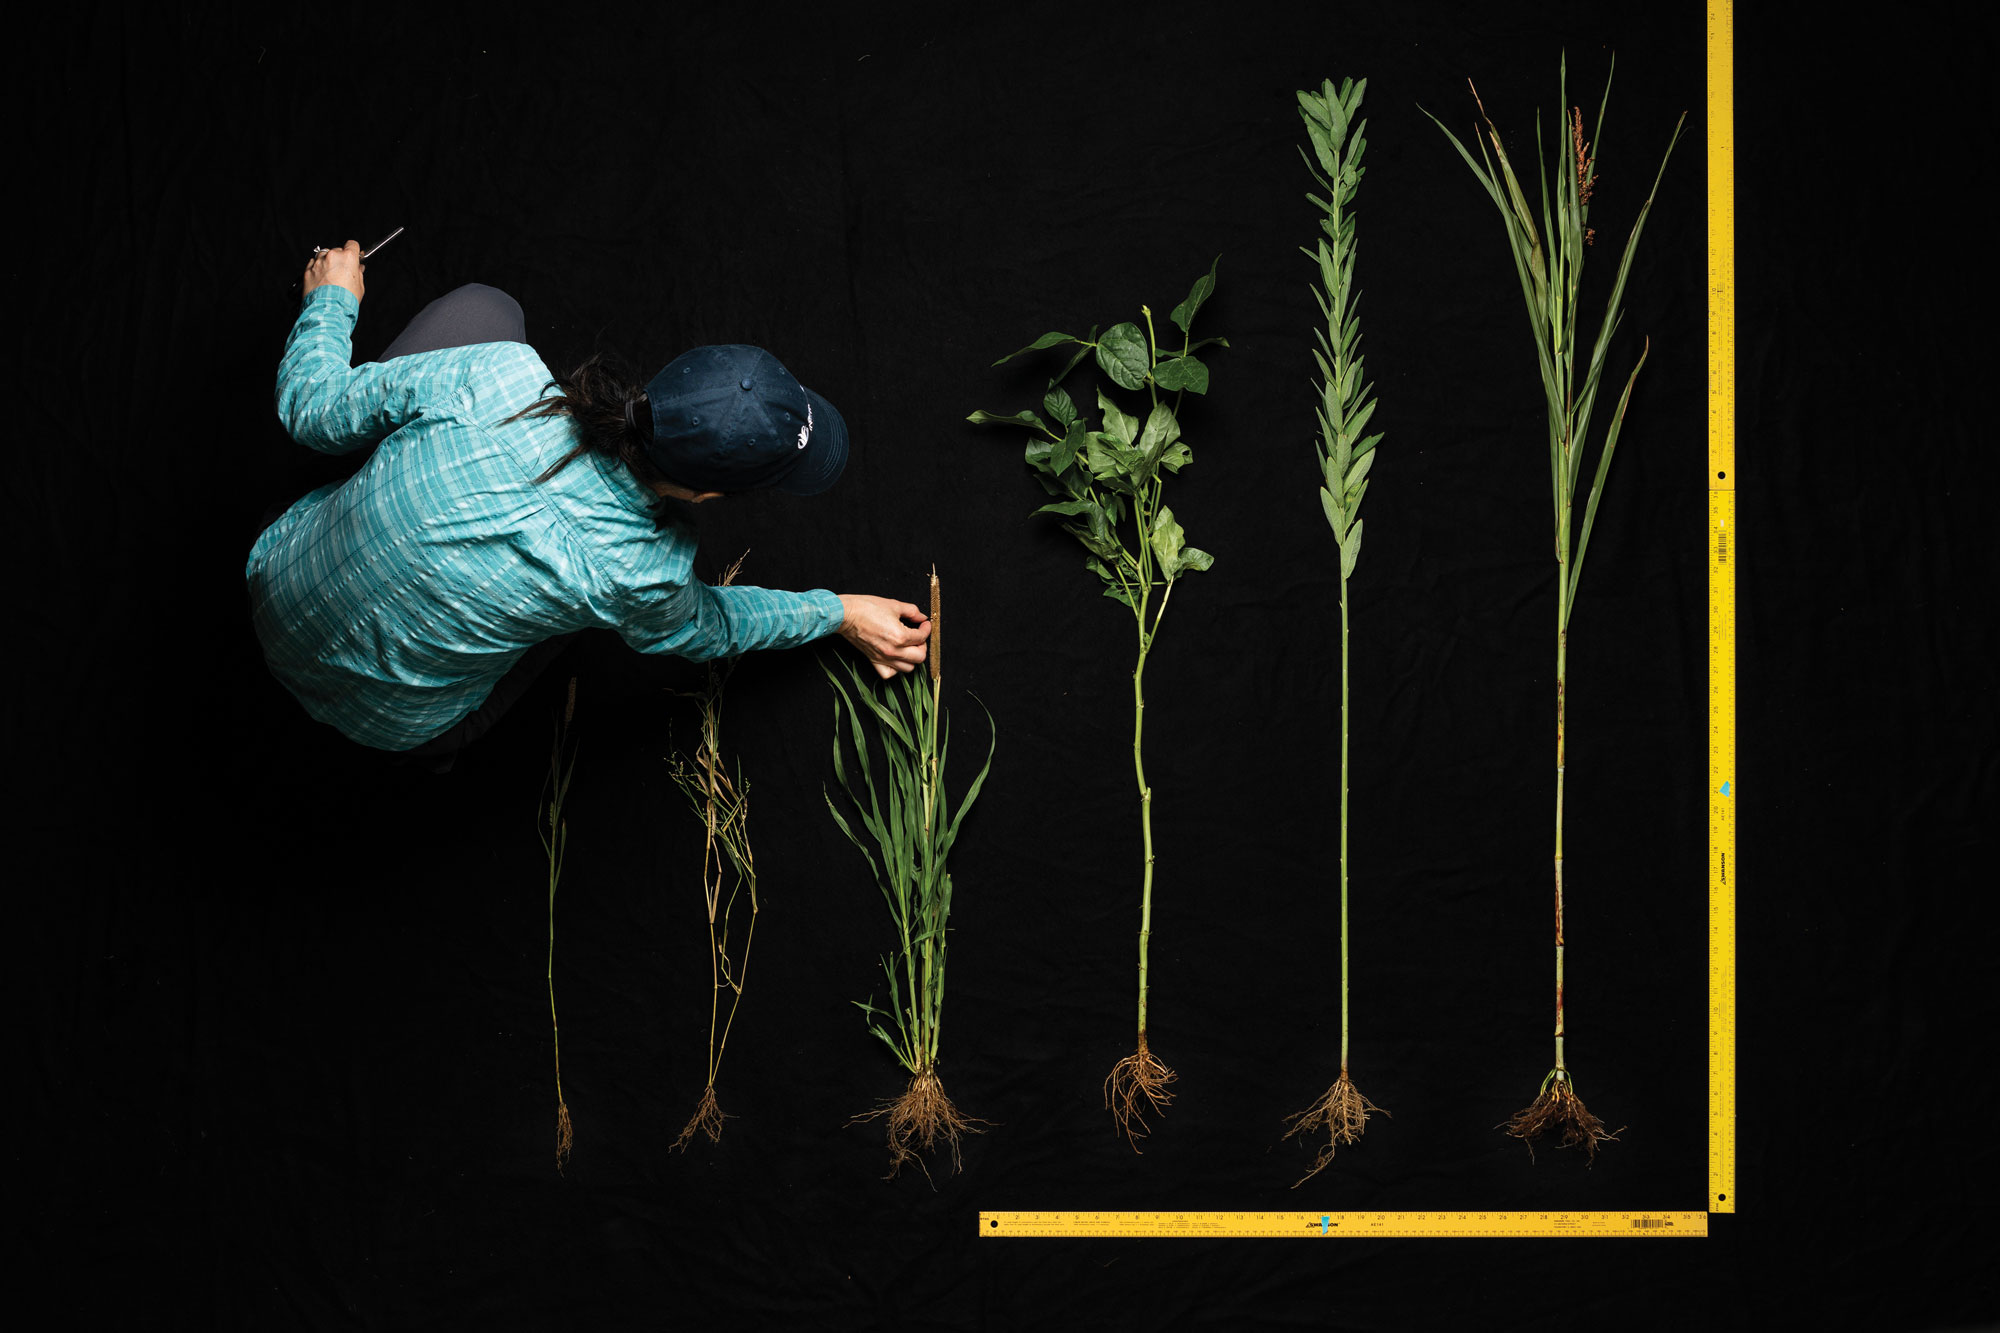 Maria Monteros measures plants.